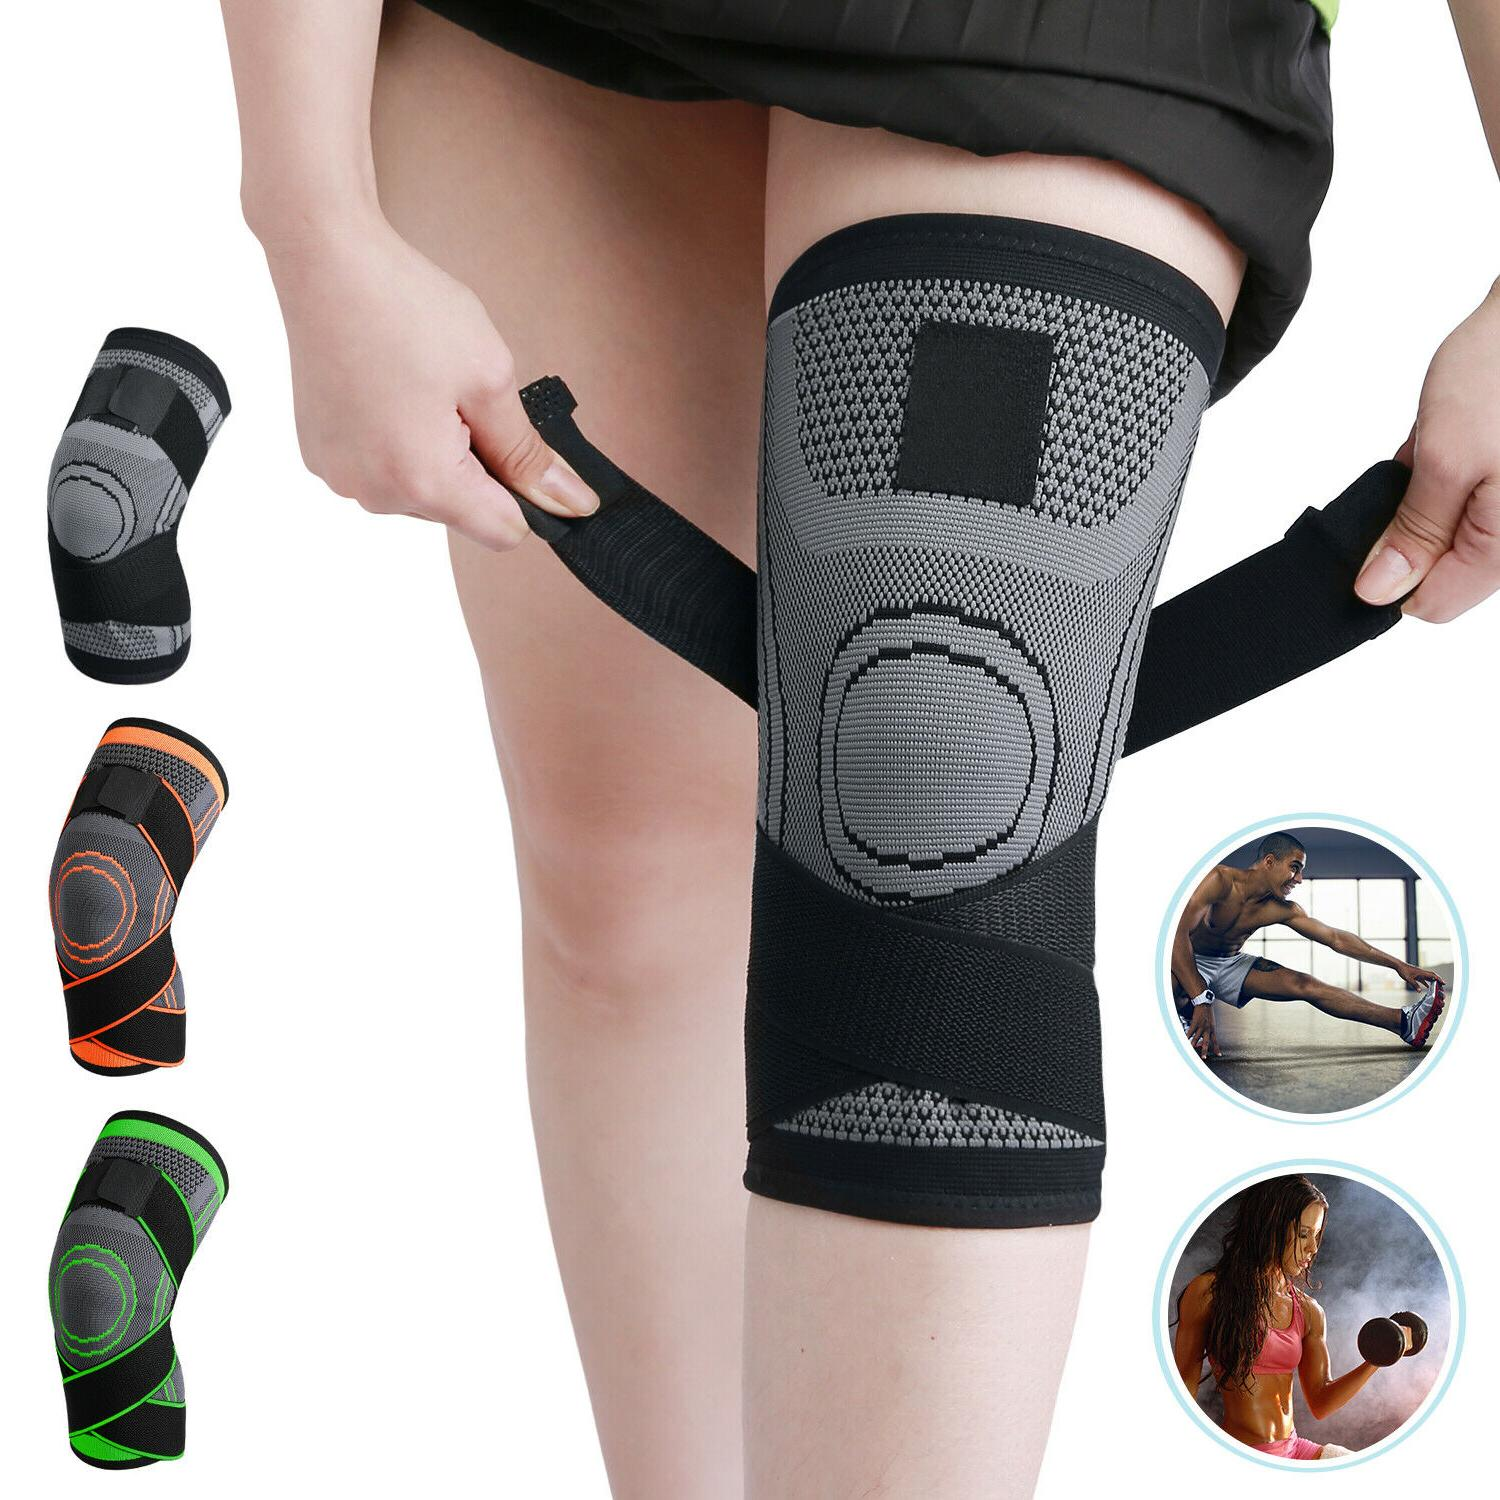 copper compression knee sleeve brace patella support